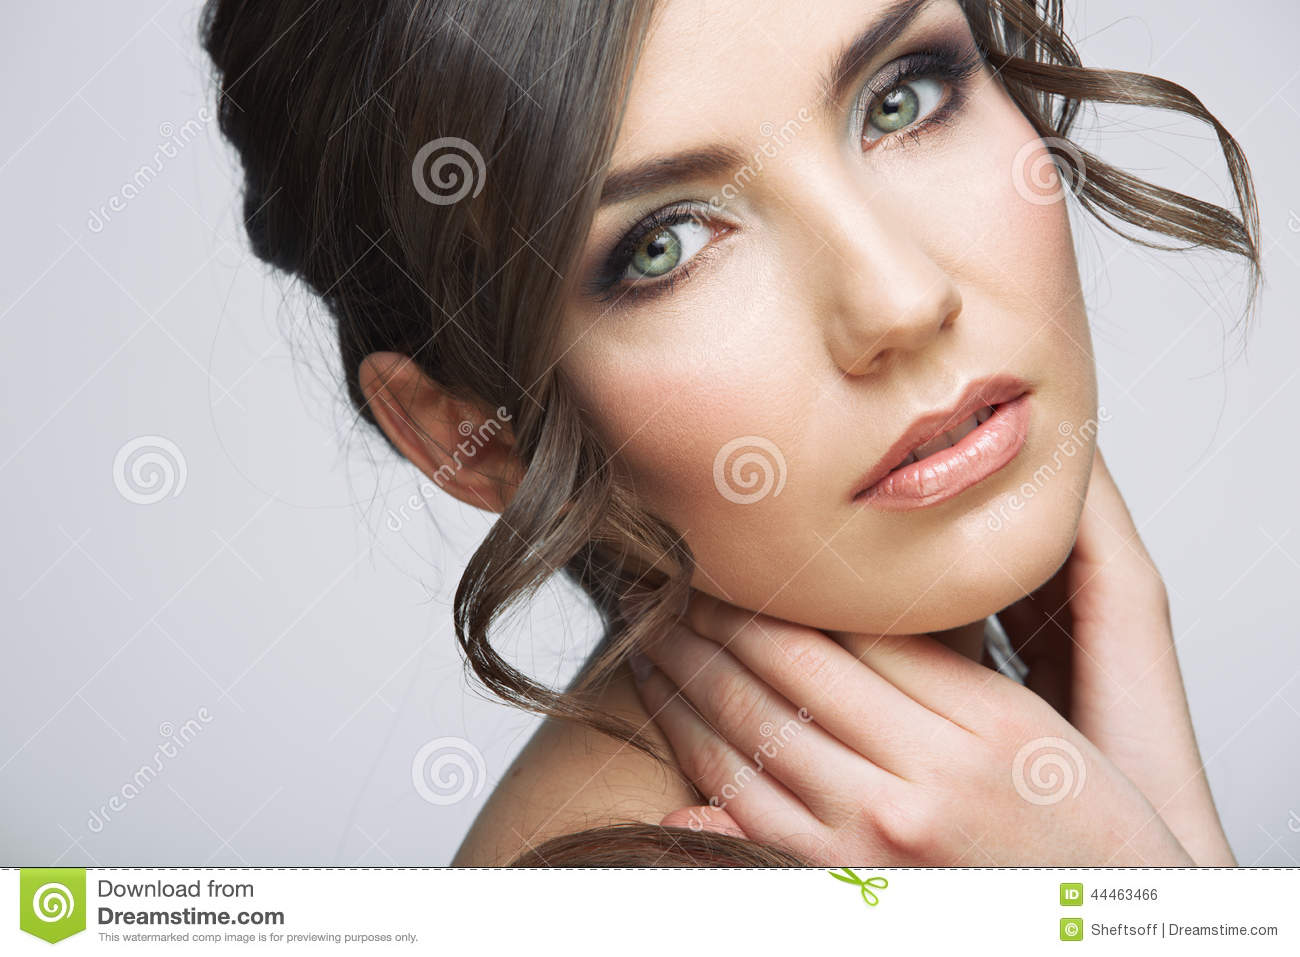 Beautiful girl close up face portrait with long hair style.